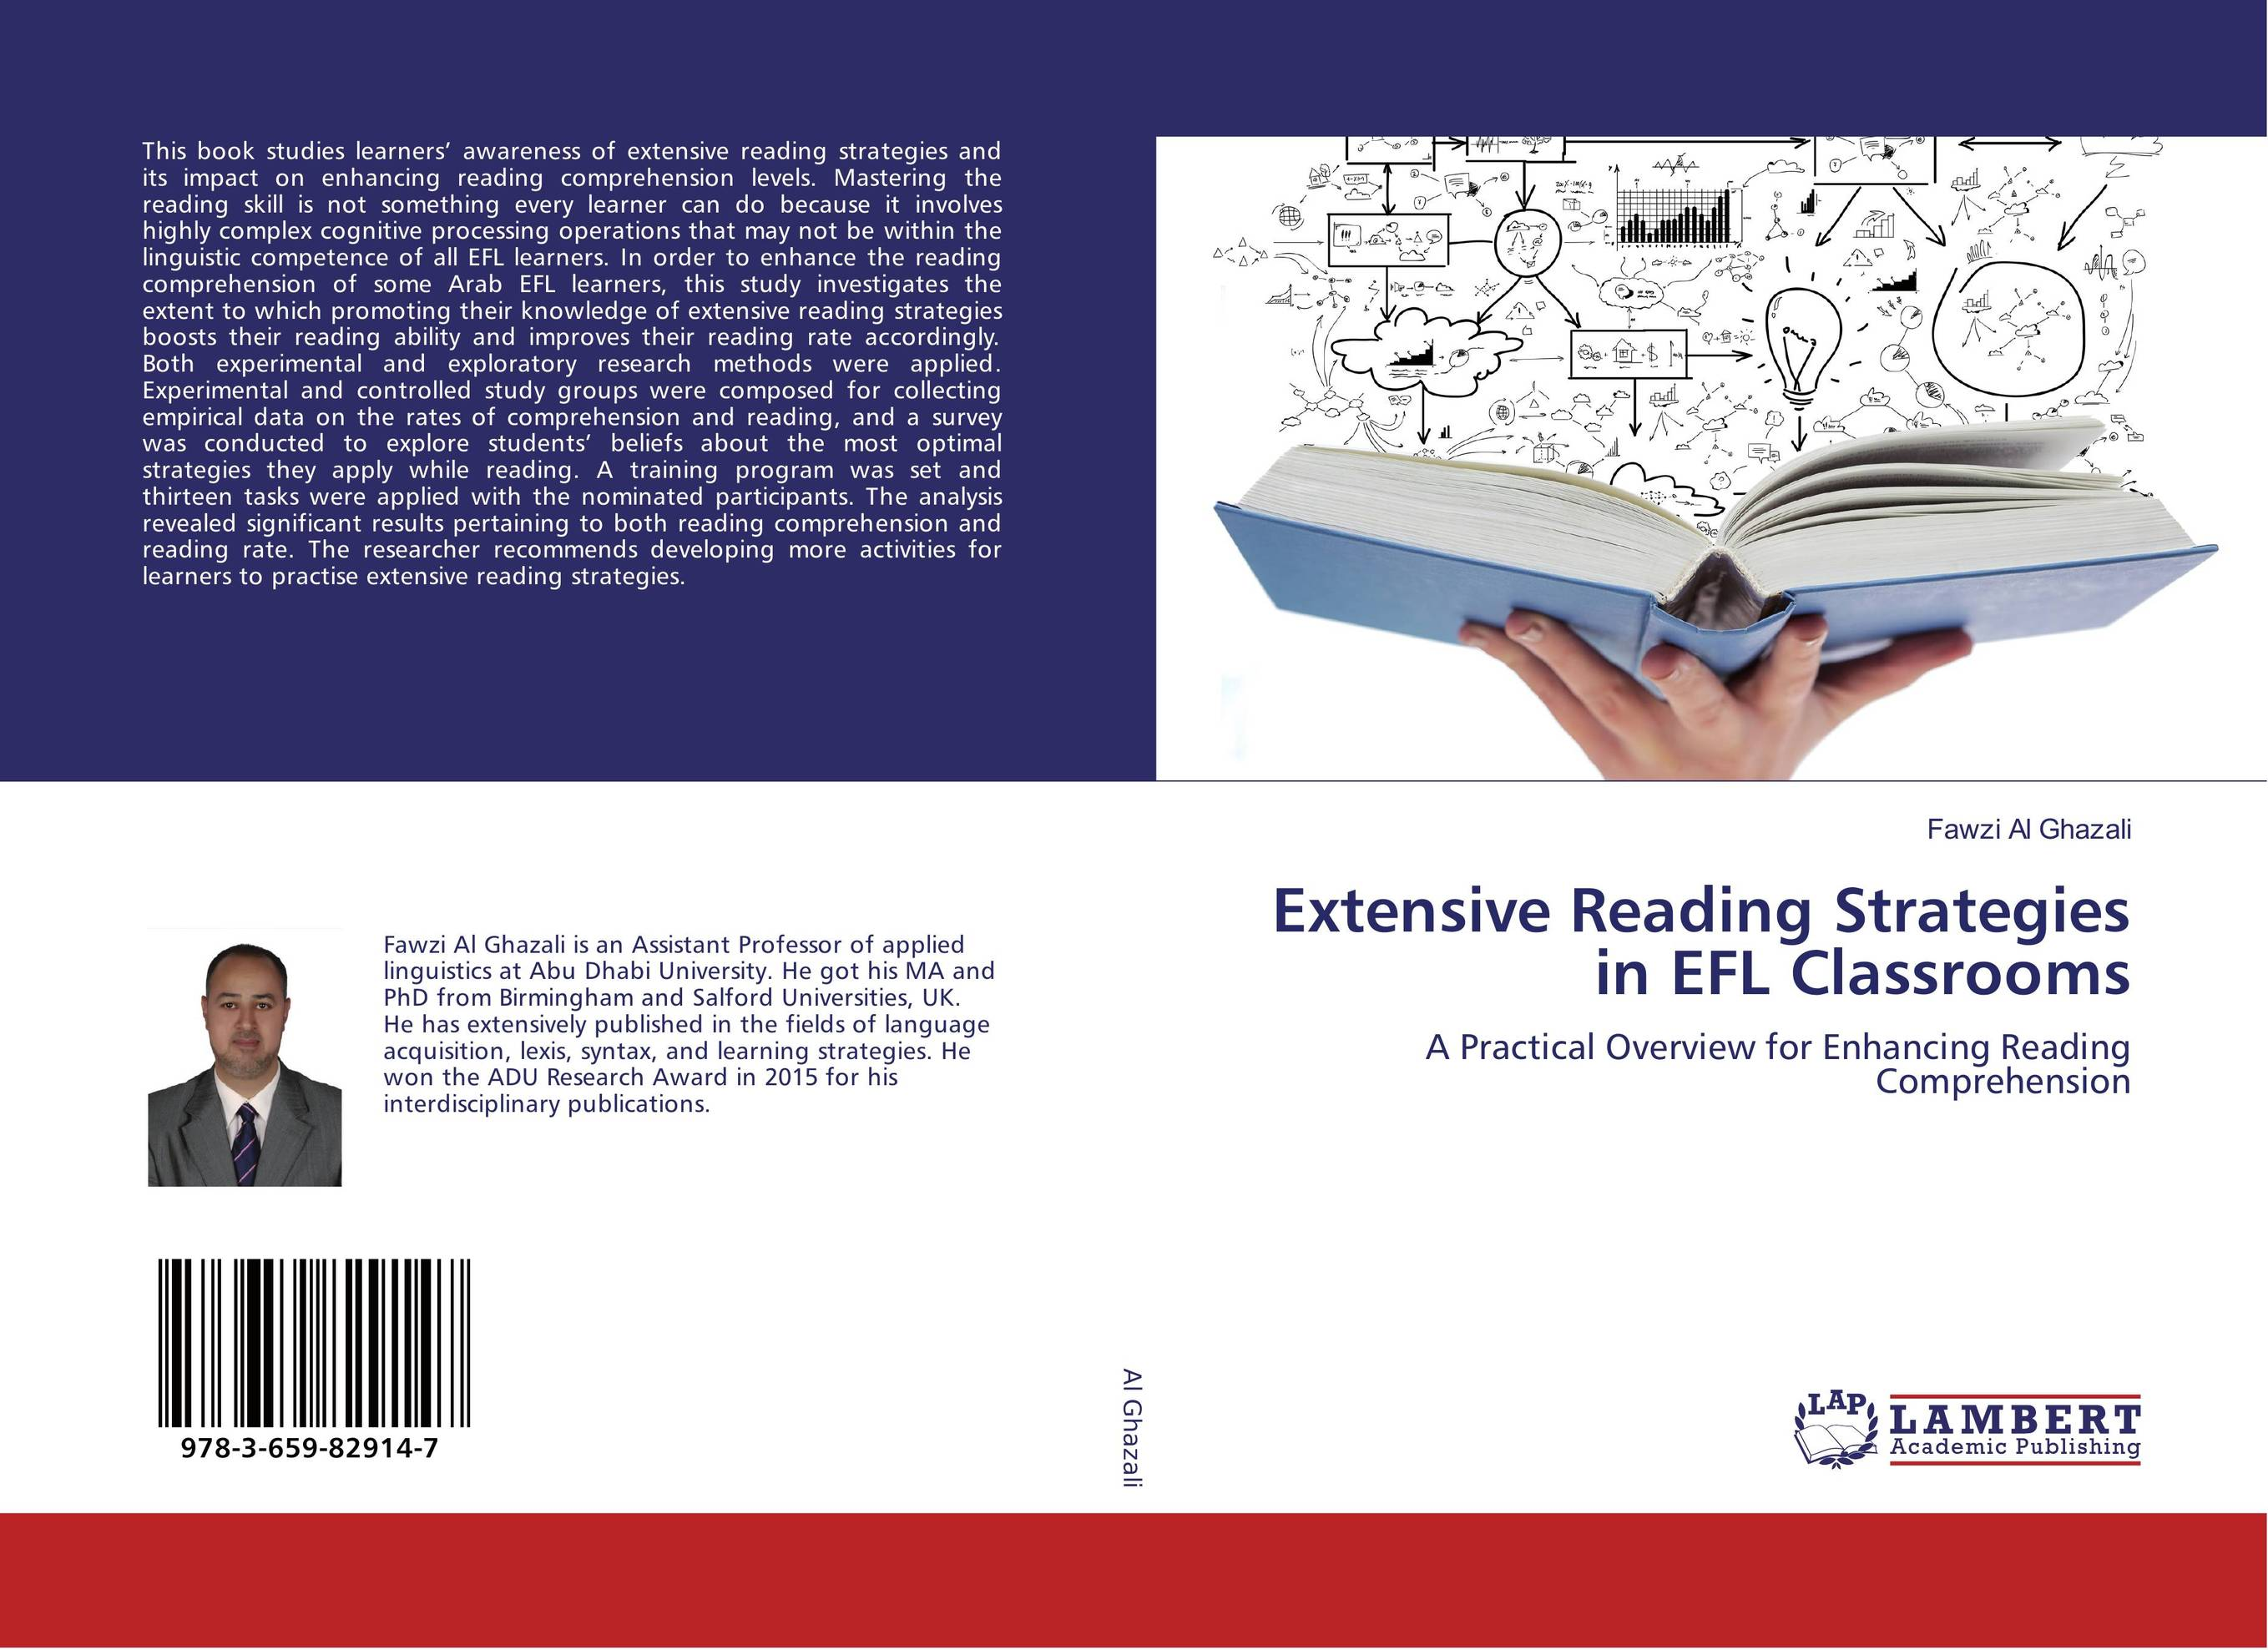 Extensive Reading Strategies in EFL Classrooms listening strategies of iranian efl learners with varied test tasks